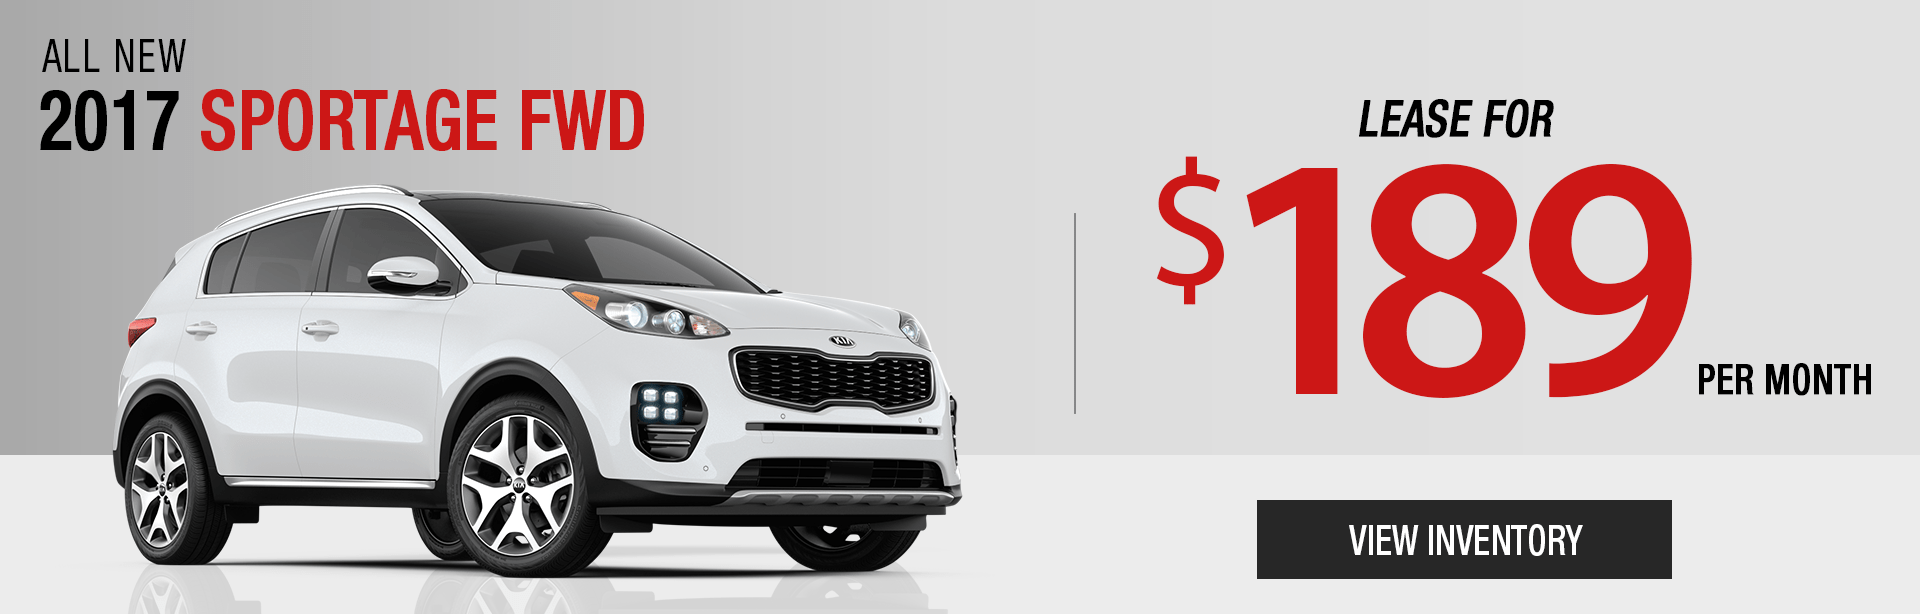 Lease 2017 Sportage